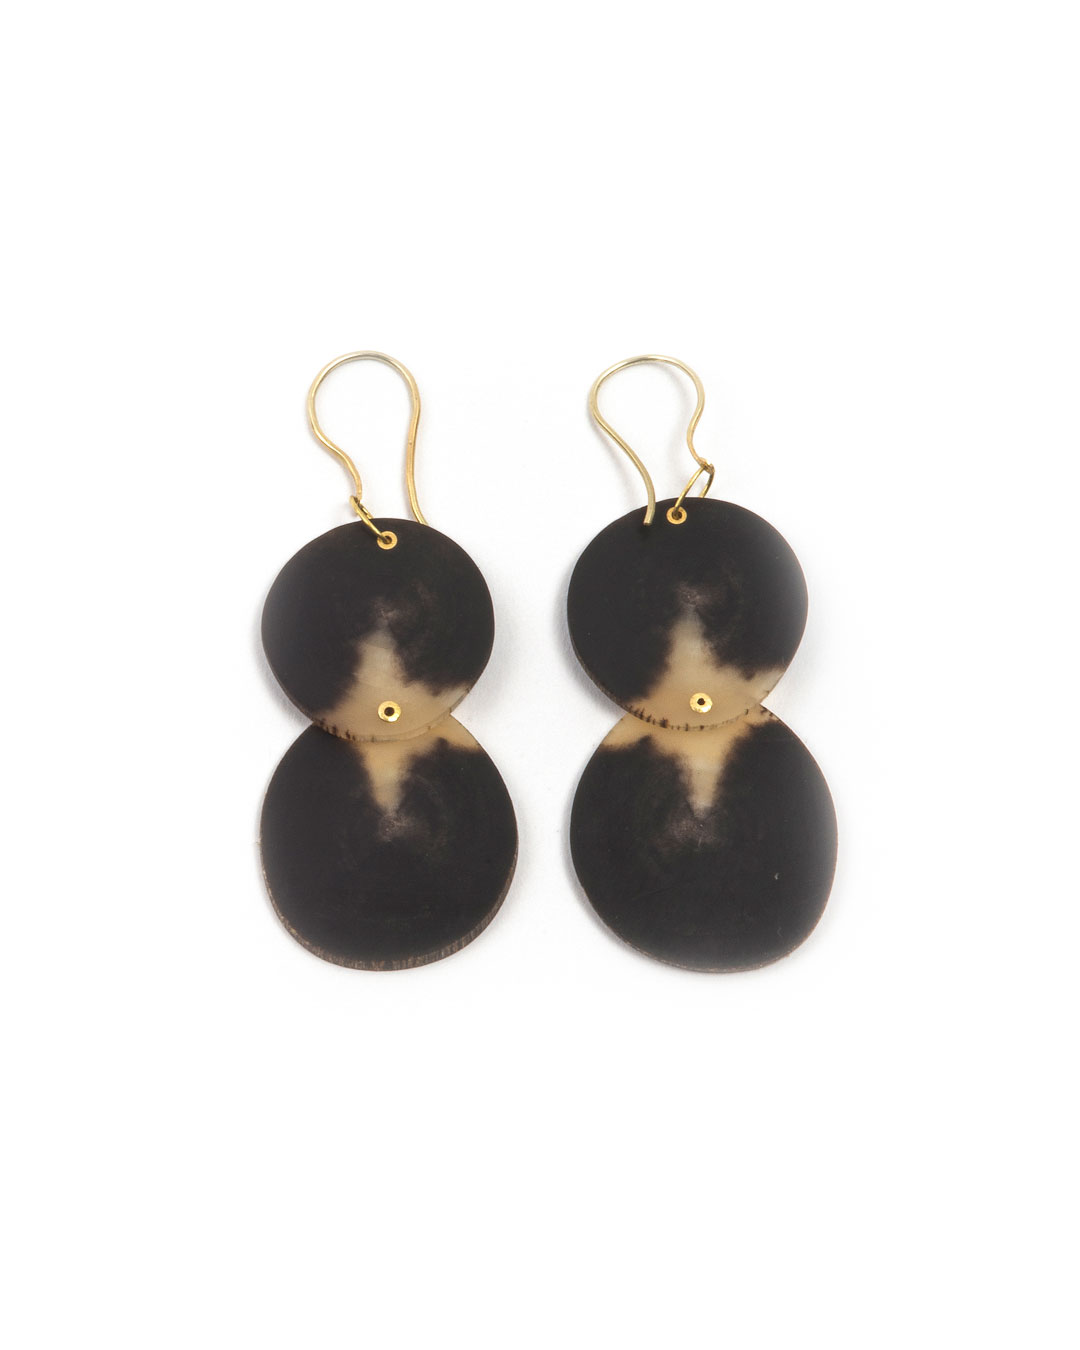 Julie Mollenhauer, untitled (2 Discs), 2019, earrings; buffalo horn, 18ct gold, 14ct gold, 60 x 25 x 3 mm, €720